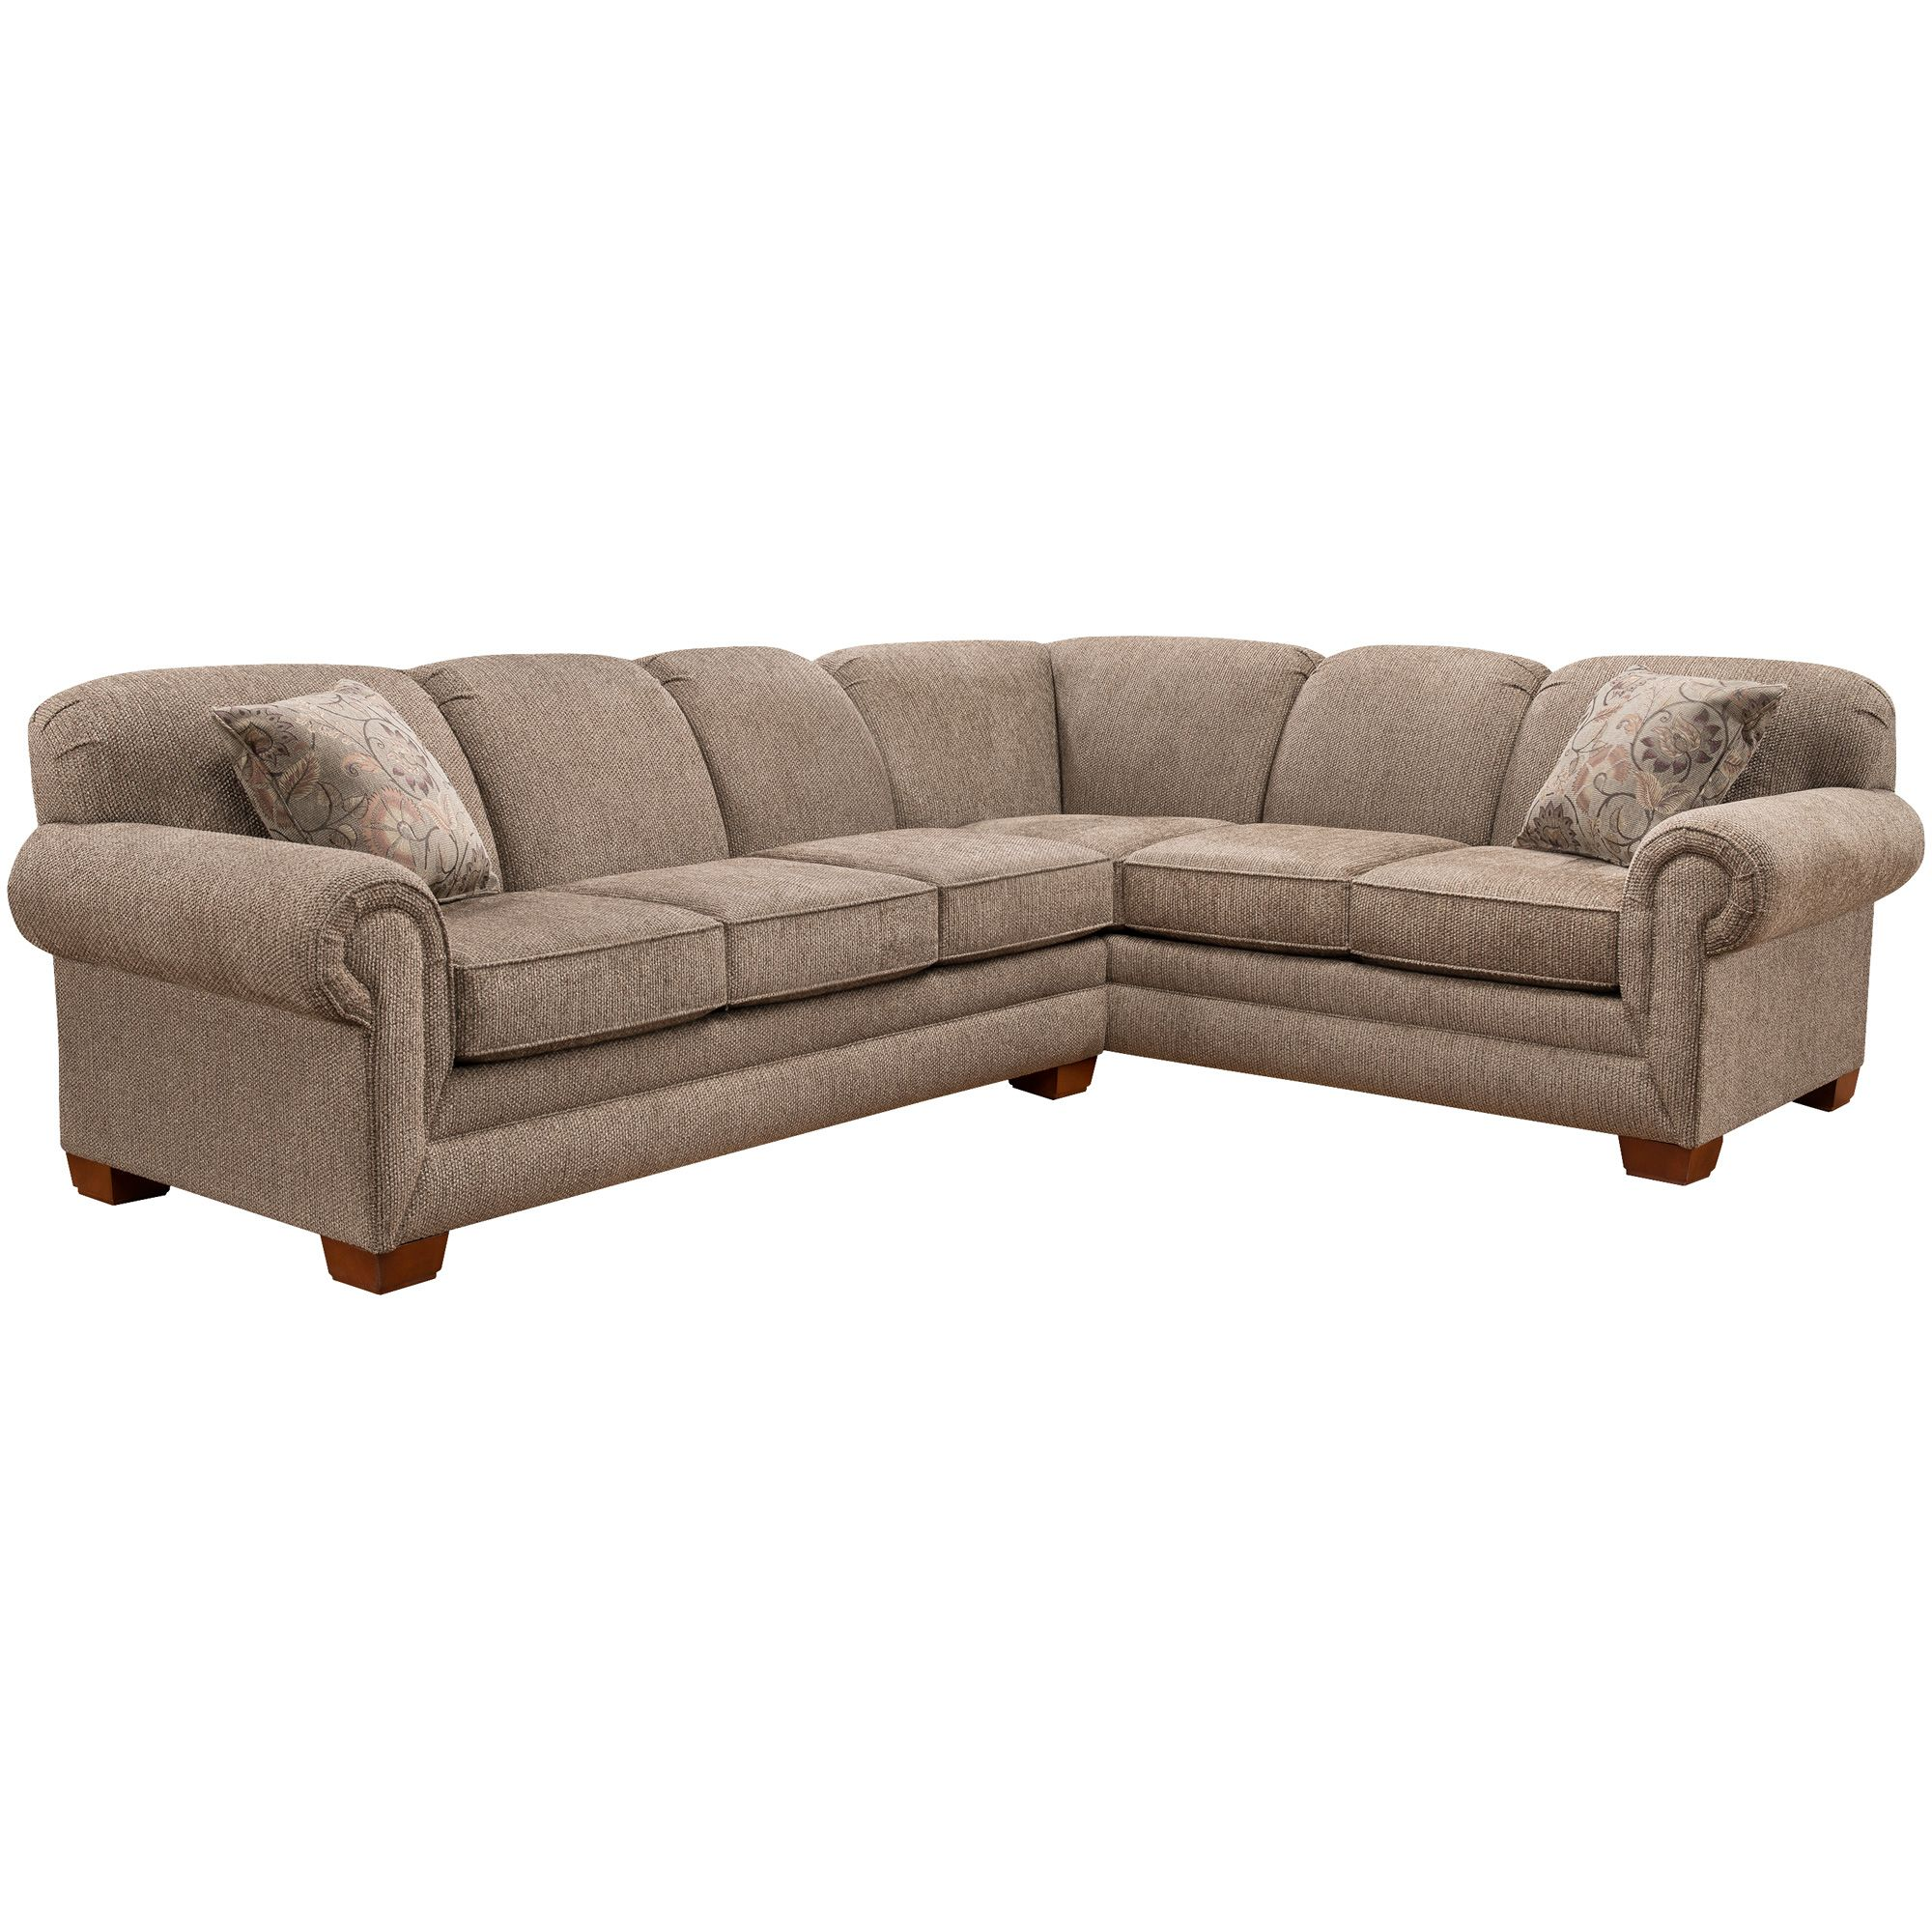 Tenor 2 Piece Brown Large Sectional   Large sectional, Sofa ...